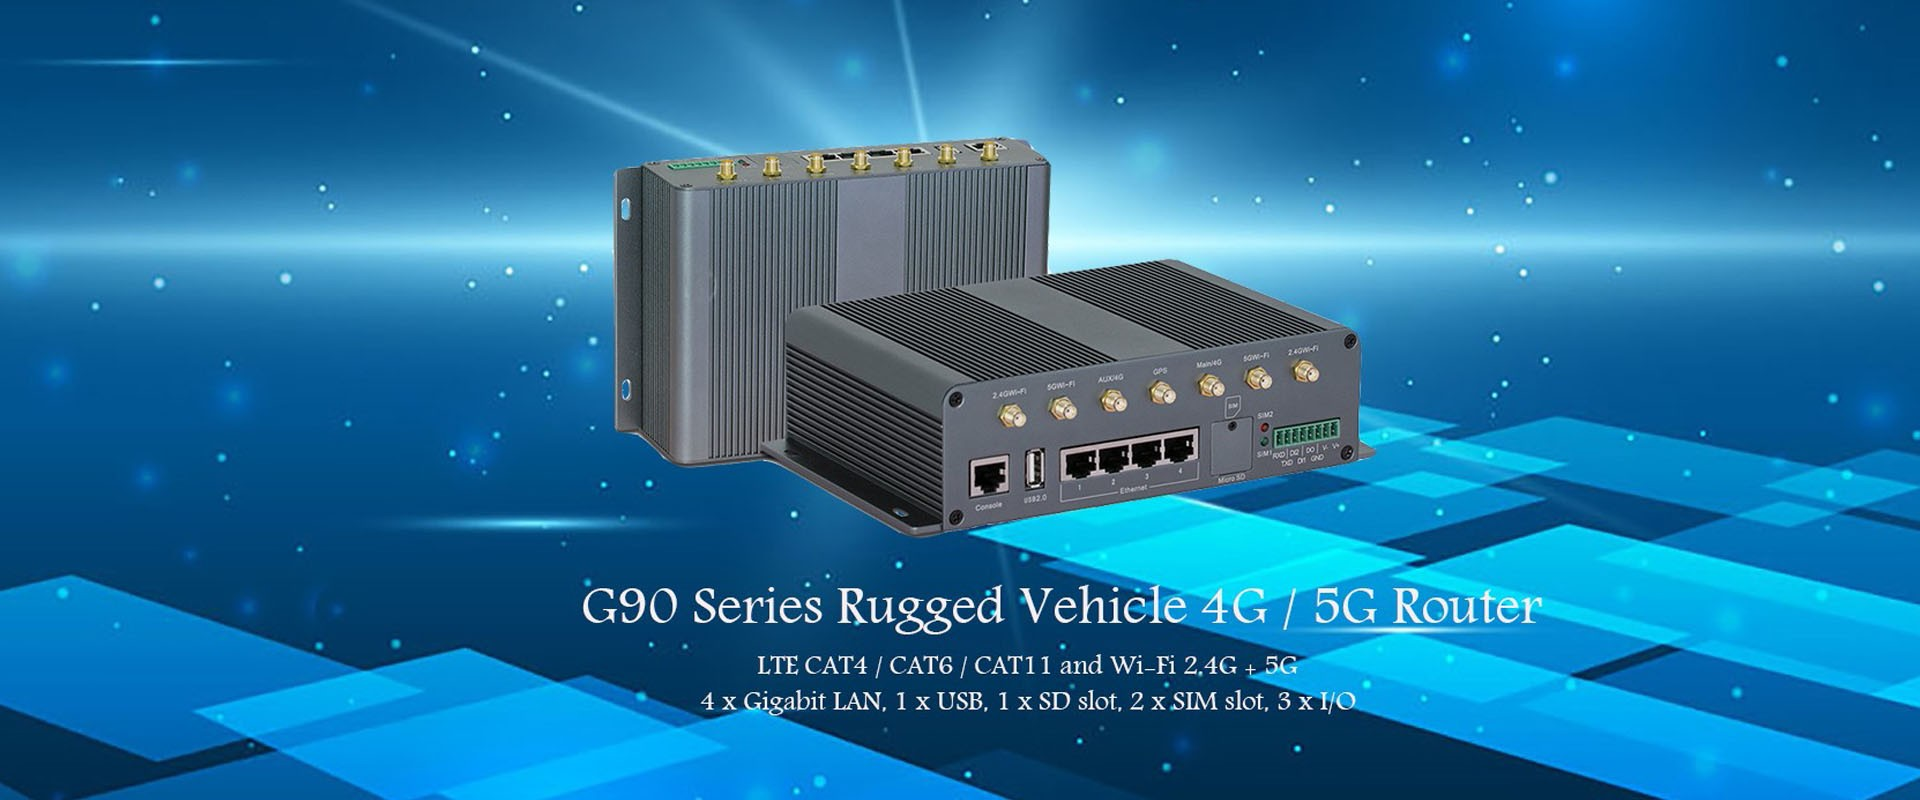 G90 Router